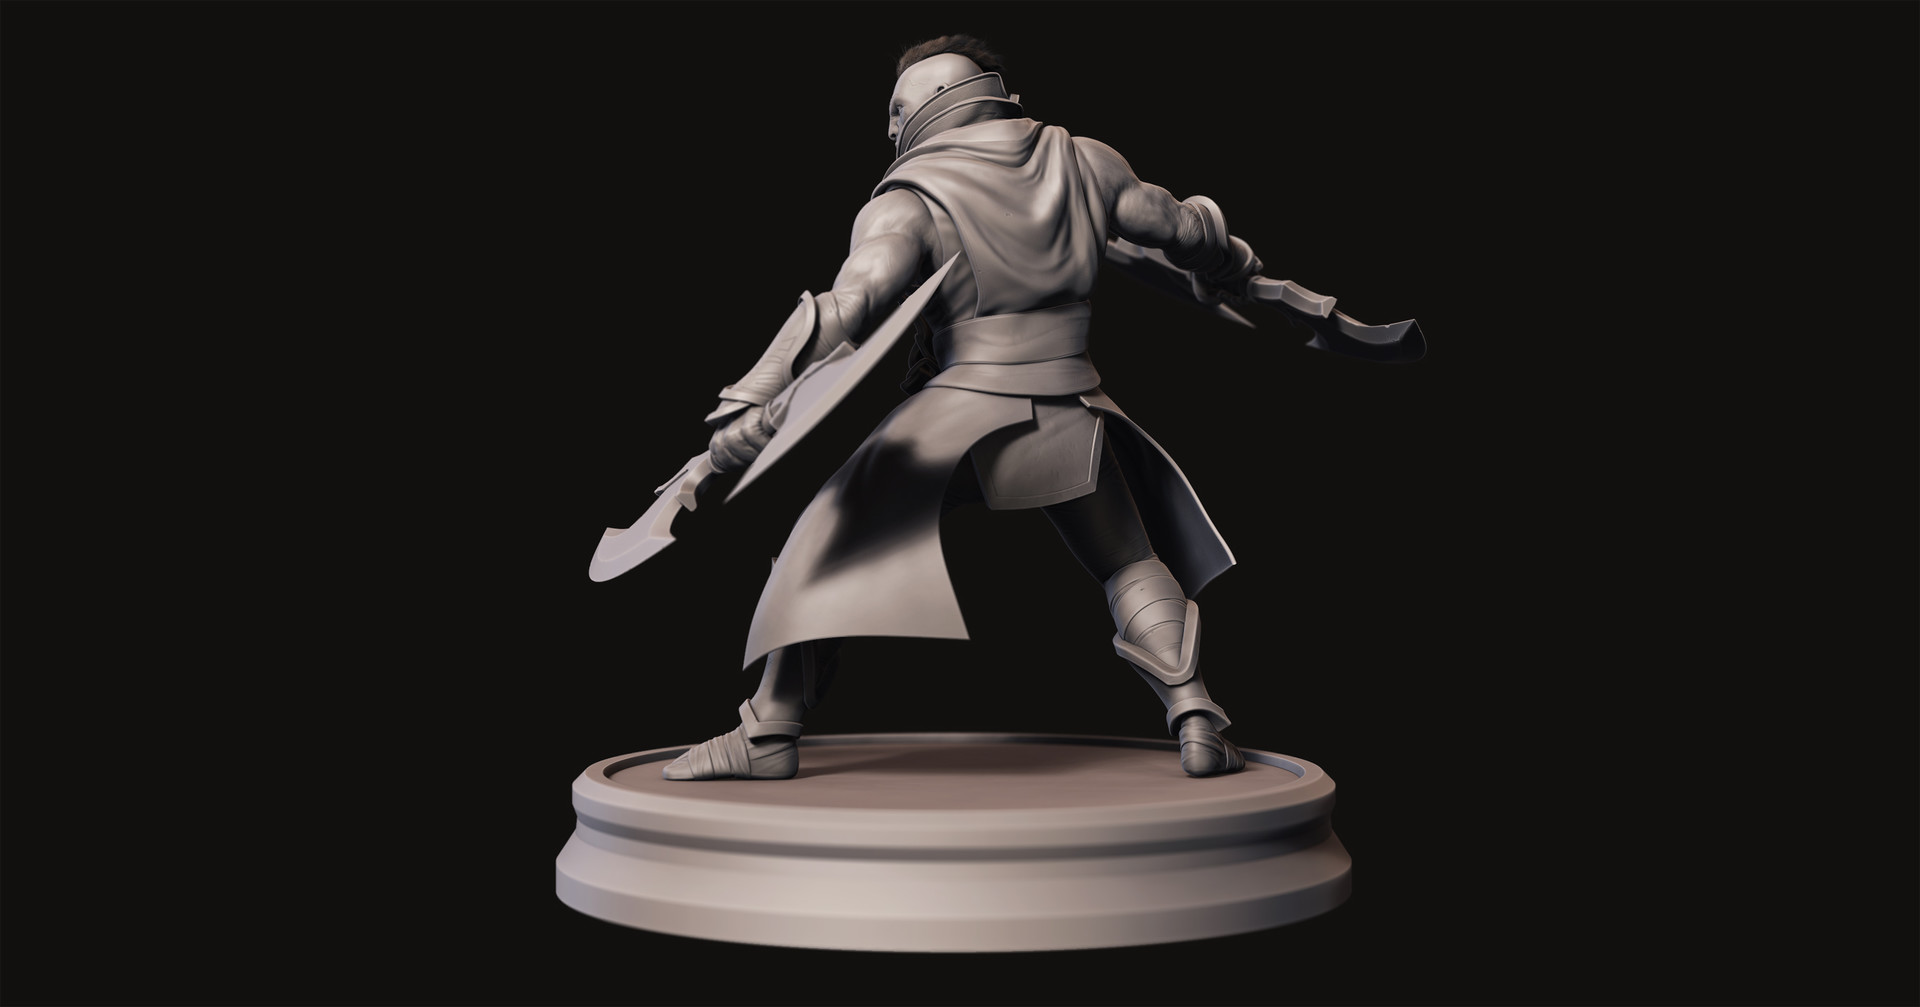 Omar chaouch antimage dota 2 fanart sculpt 01